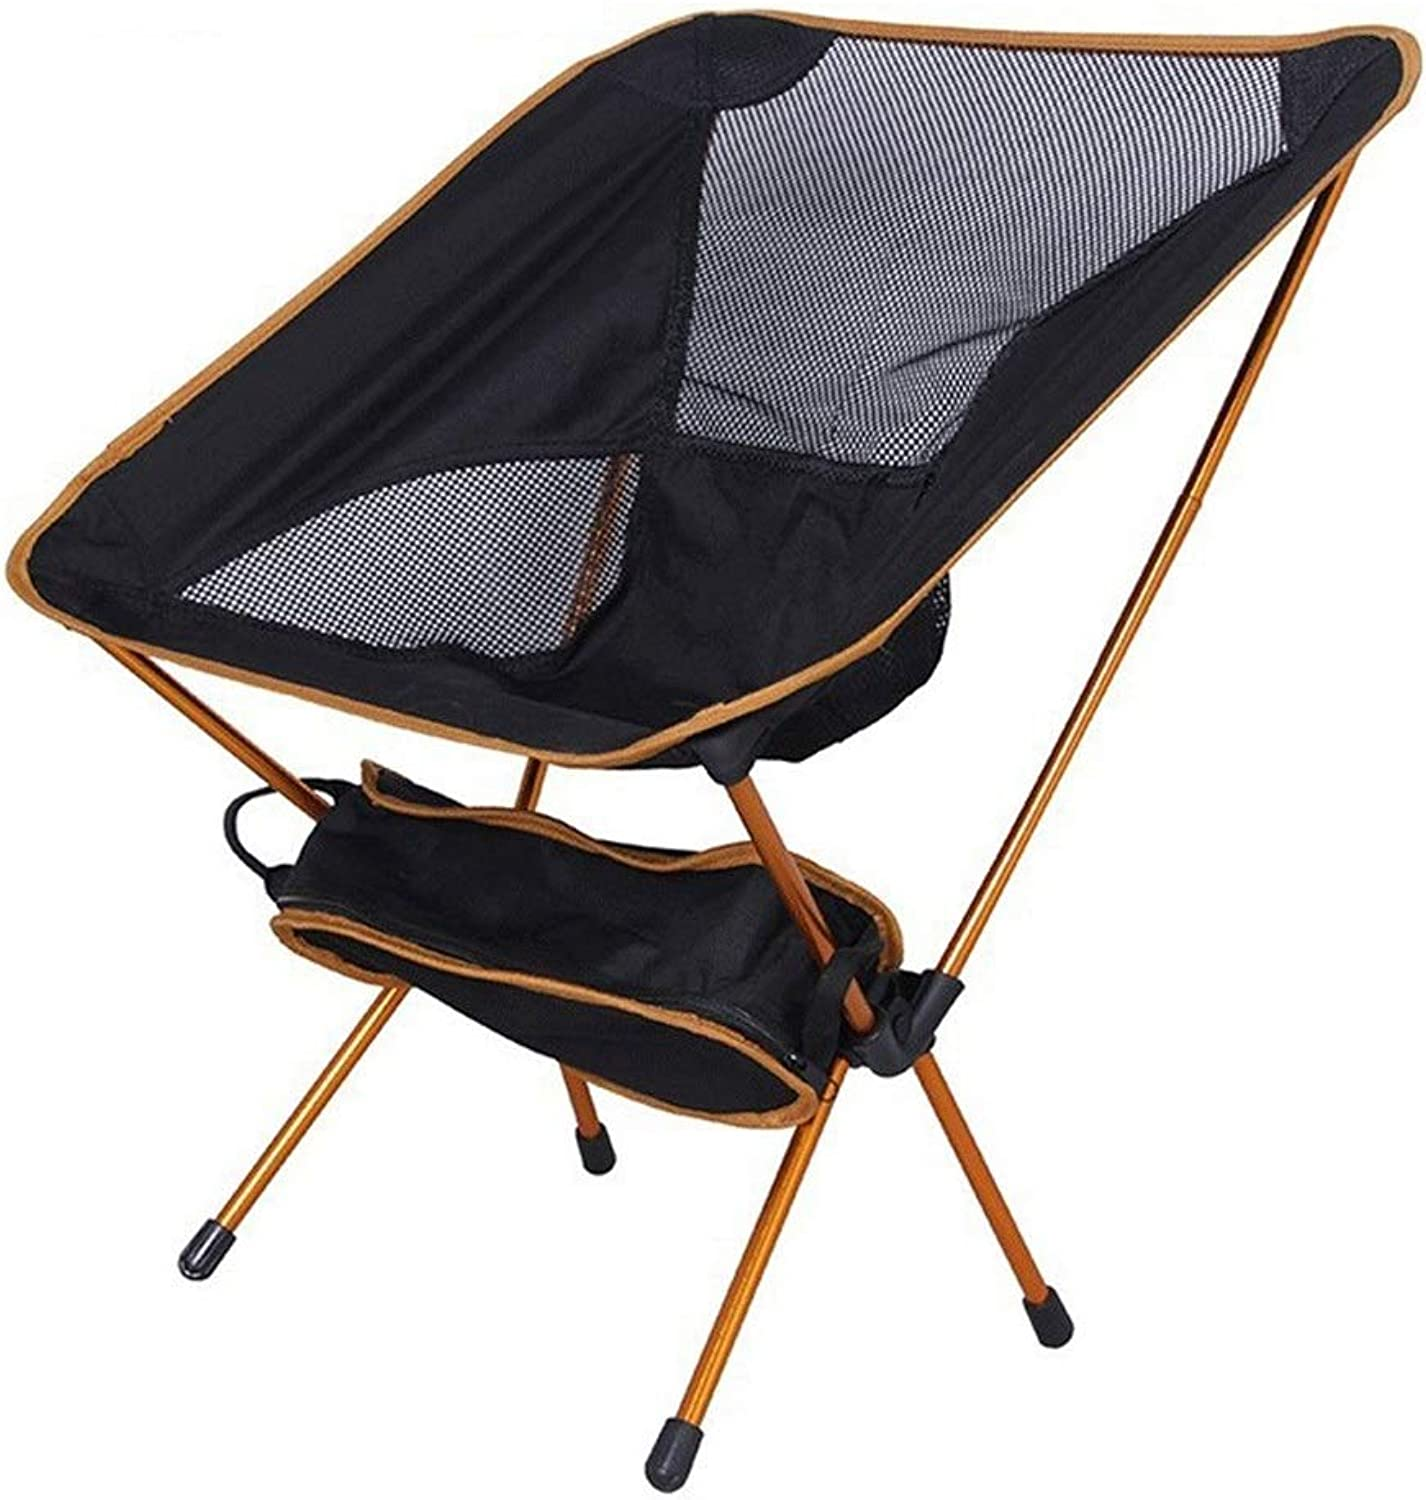 Ultralight Folding Camping Backpacking Chair Portable Compact and Heavy Duty Outdoor Camping BBQ Beach Travel Picnic Festival with 1 Storage Carry Bag (color   1 Pcs orange)